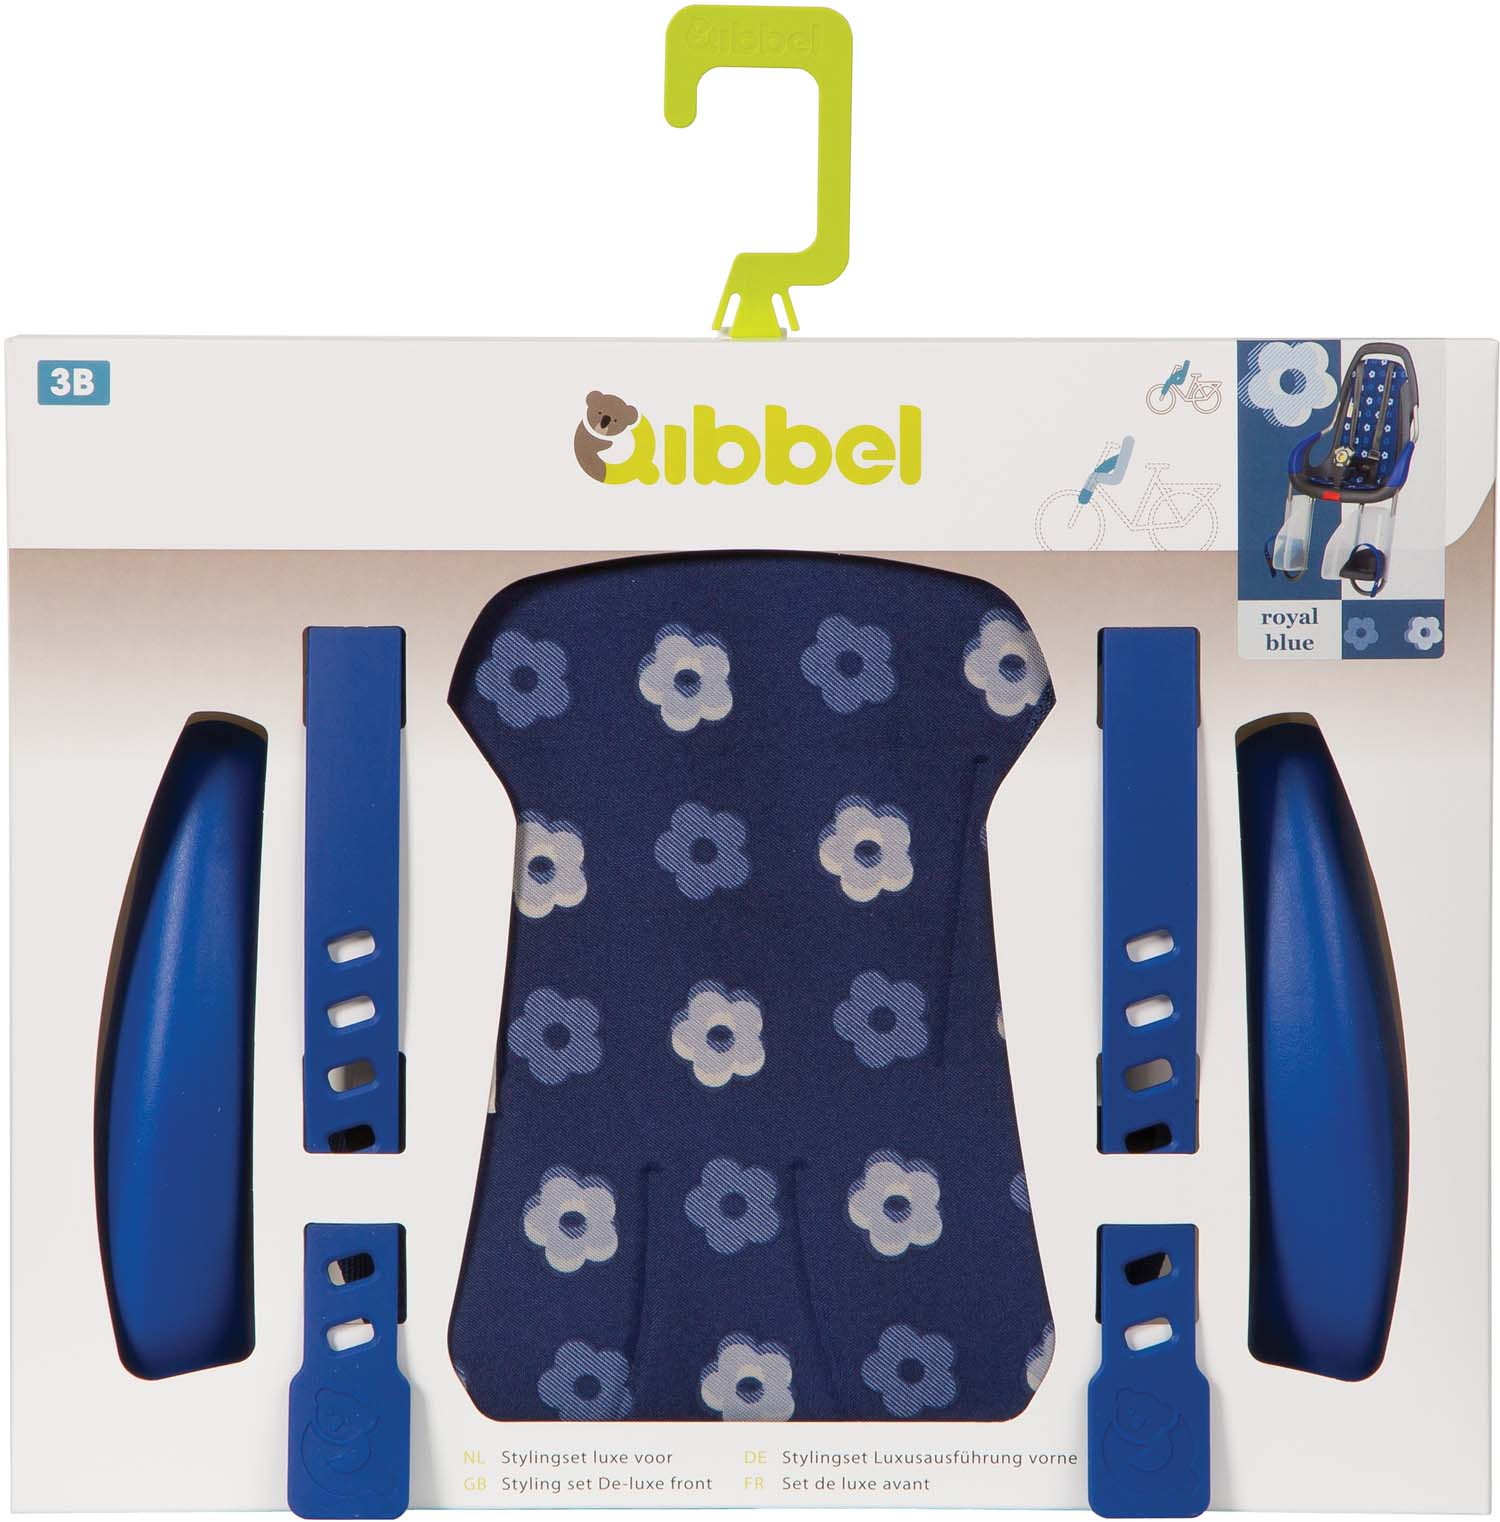 Qibbel Stylingset Luxe Royal Blauw t.b.v. Voorzitje